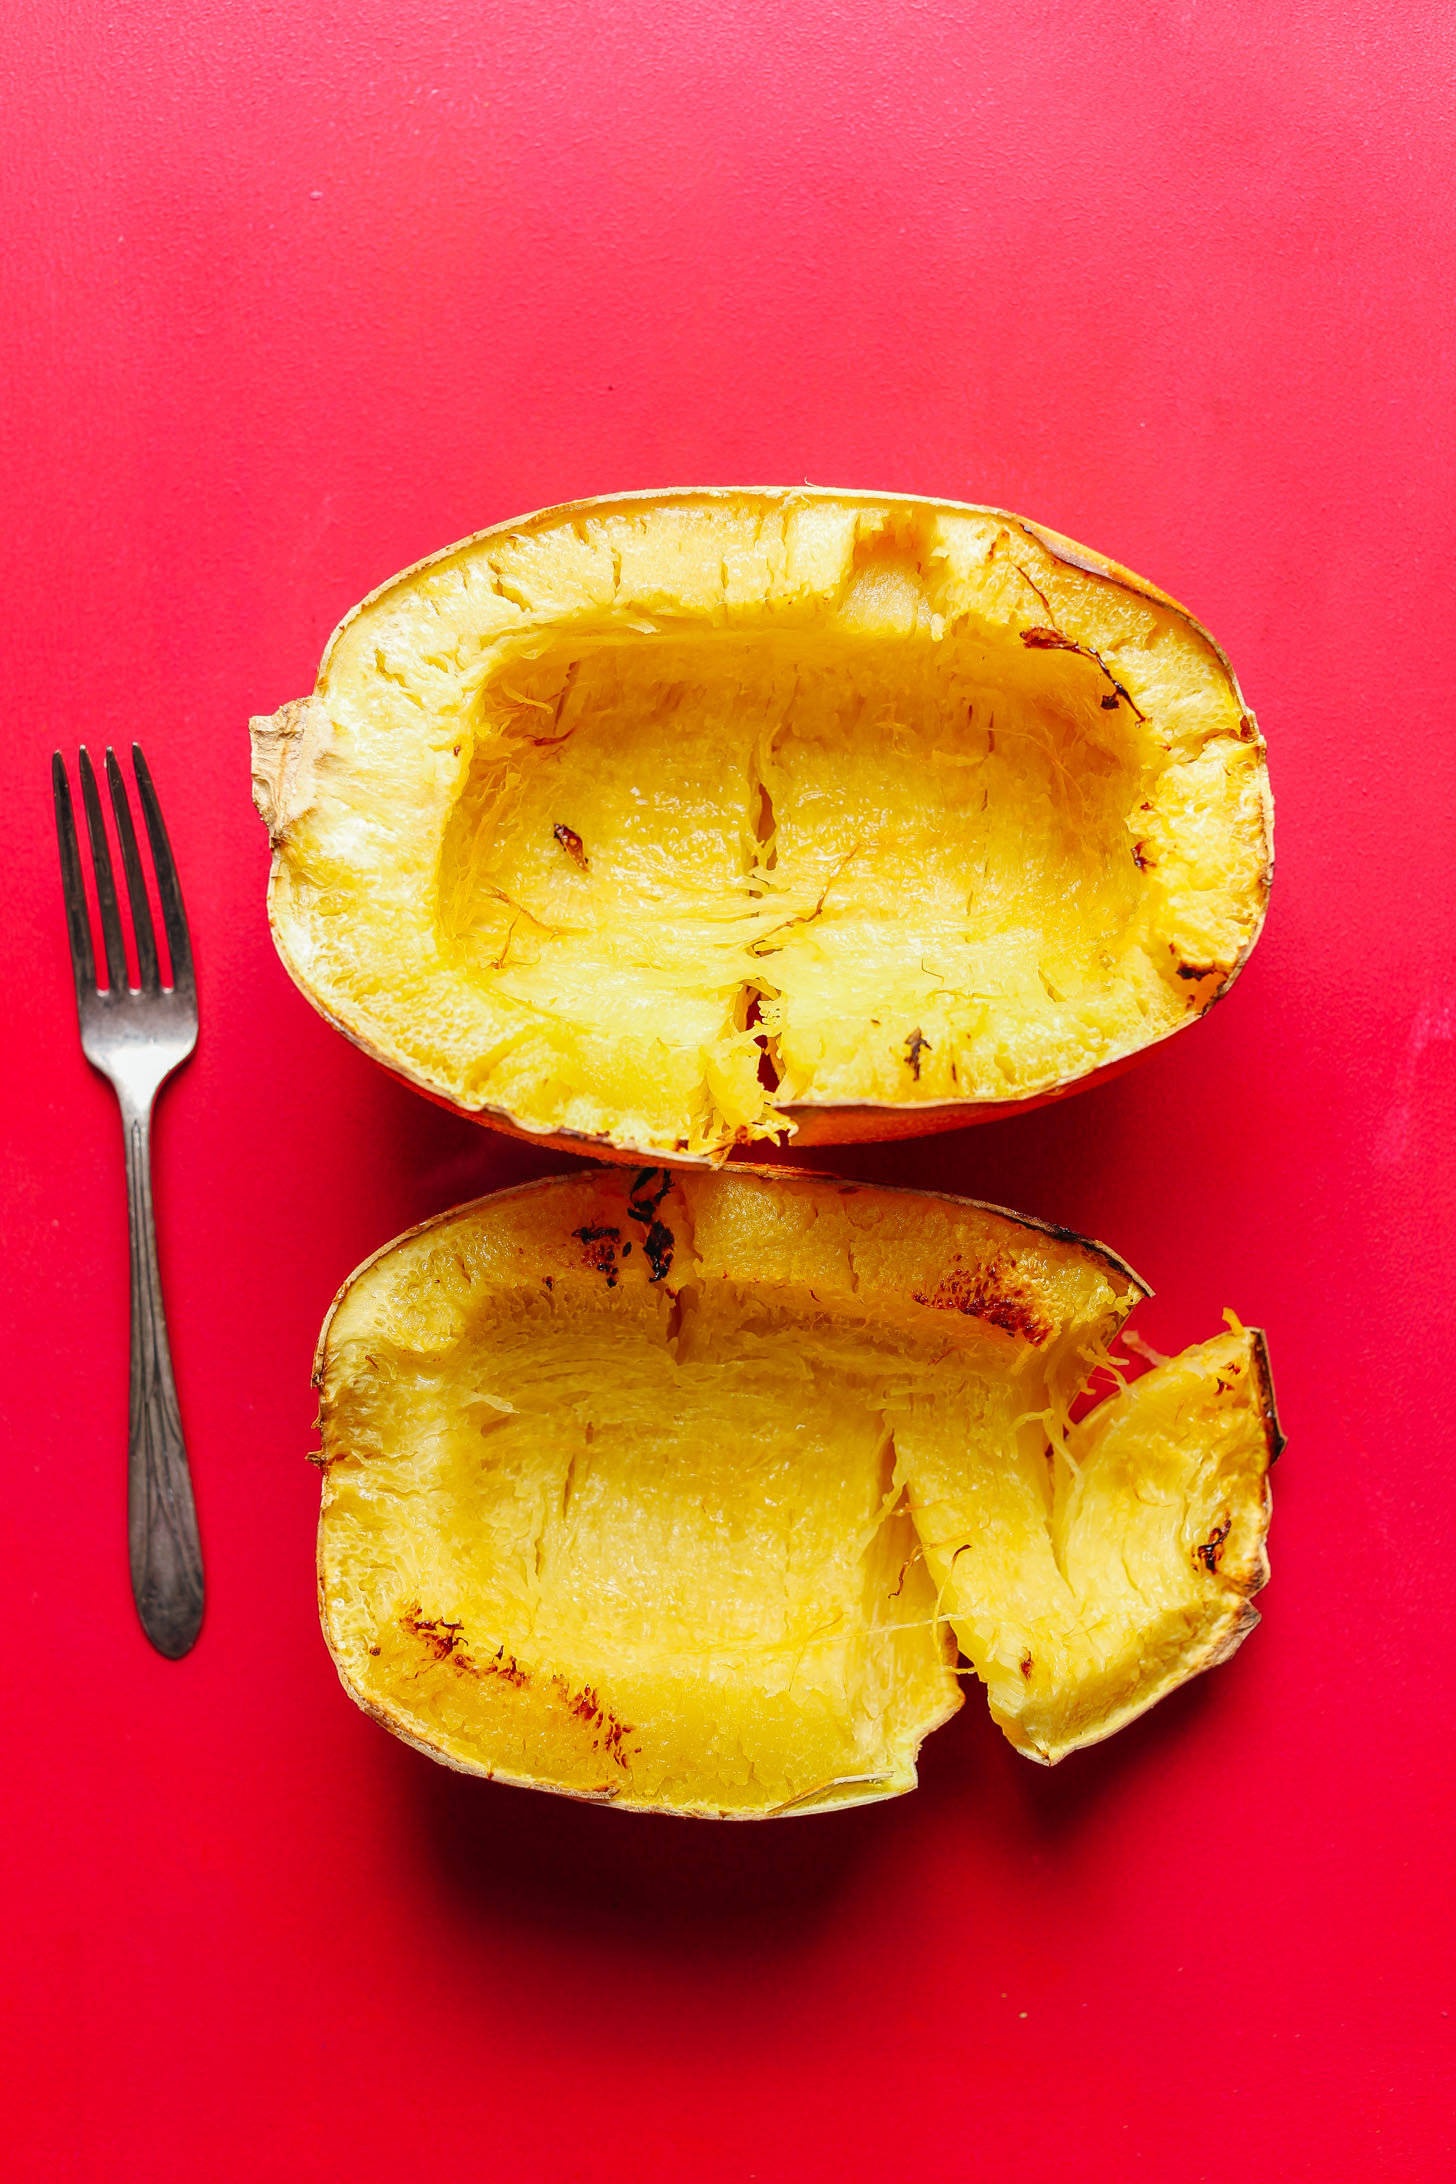 Halved and freshly baked spaghetti squash for our post on How To Roast Spaghetti Squash